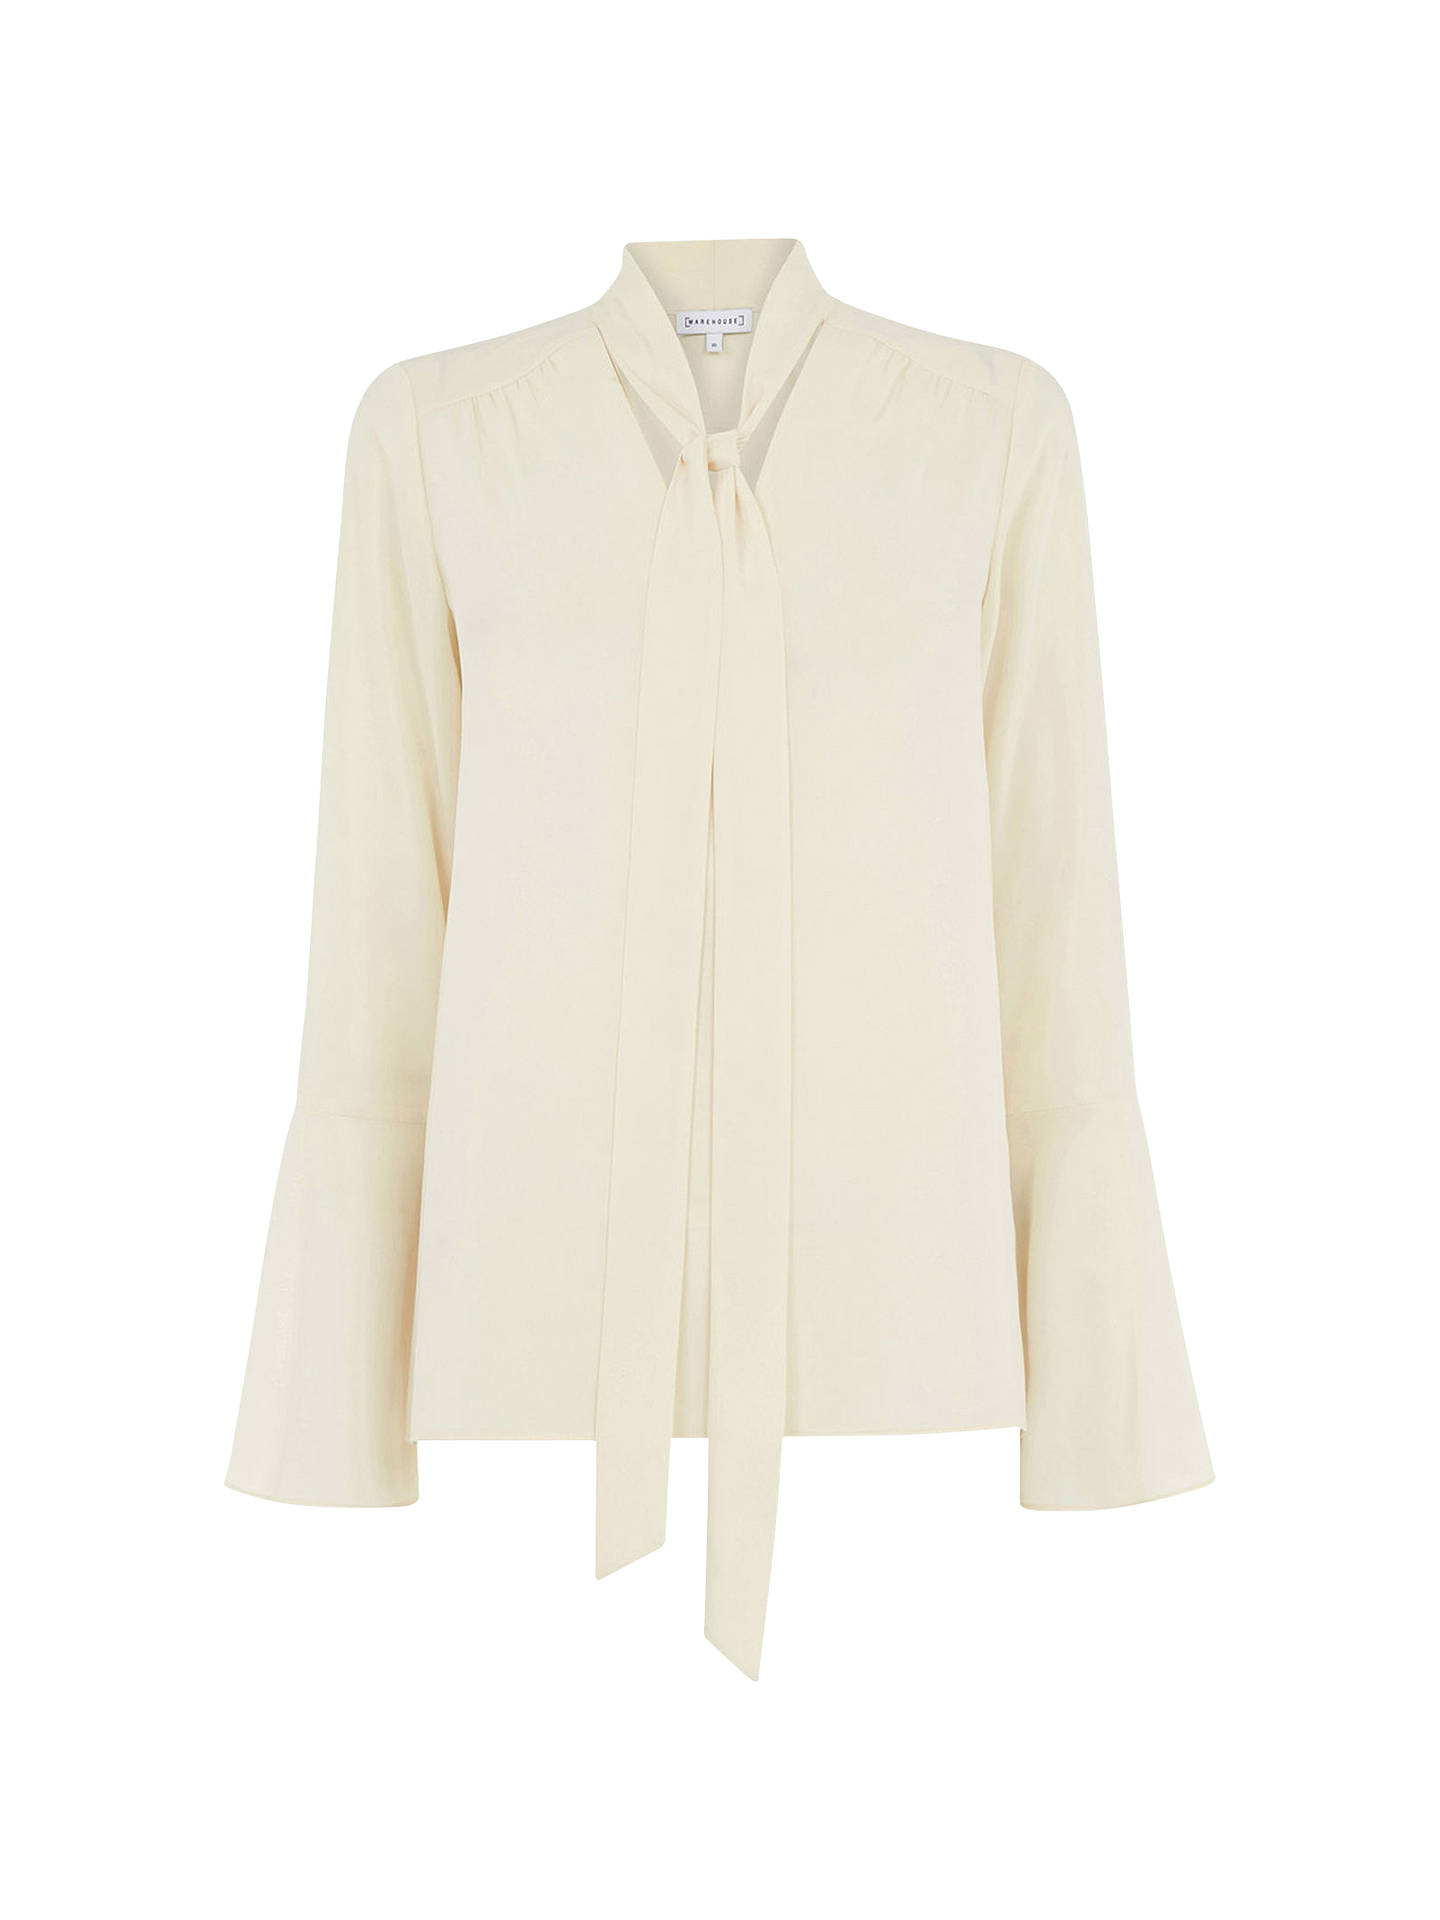 Buy Warehouse Tie Neck Blouse, Cream, 8 Online at johnlewis.com